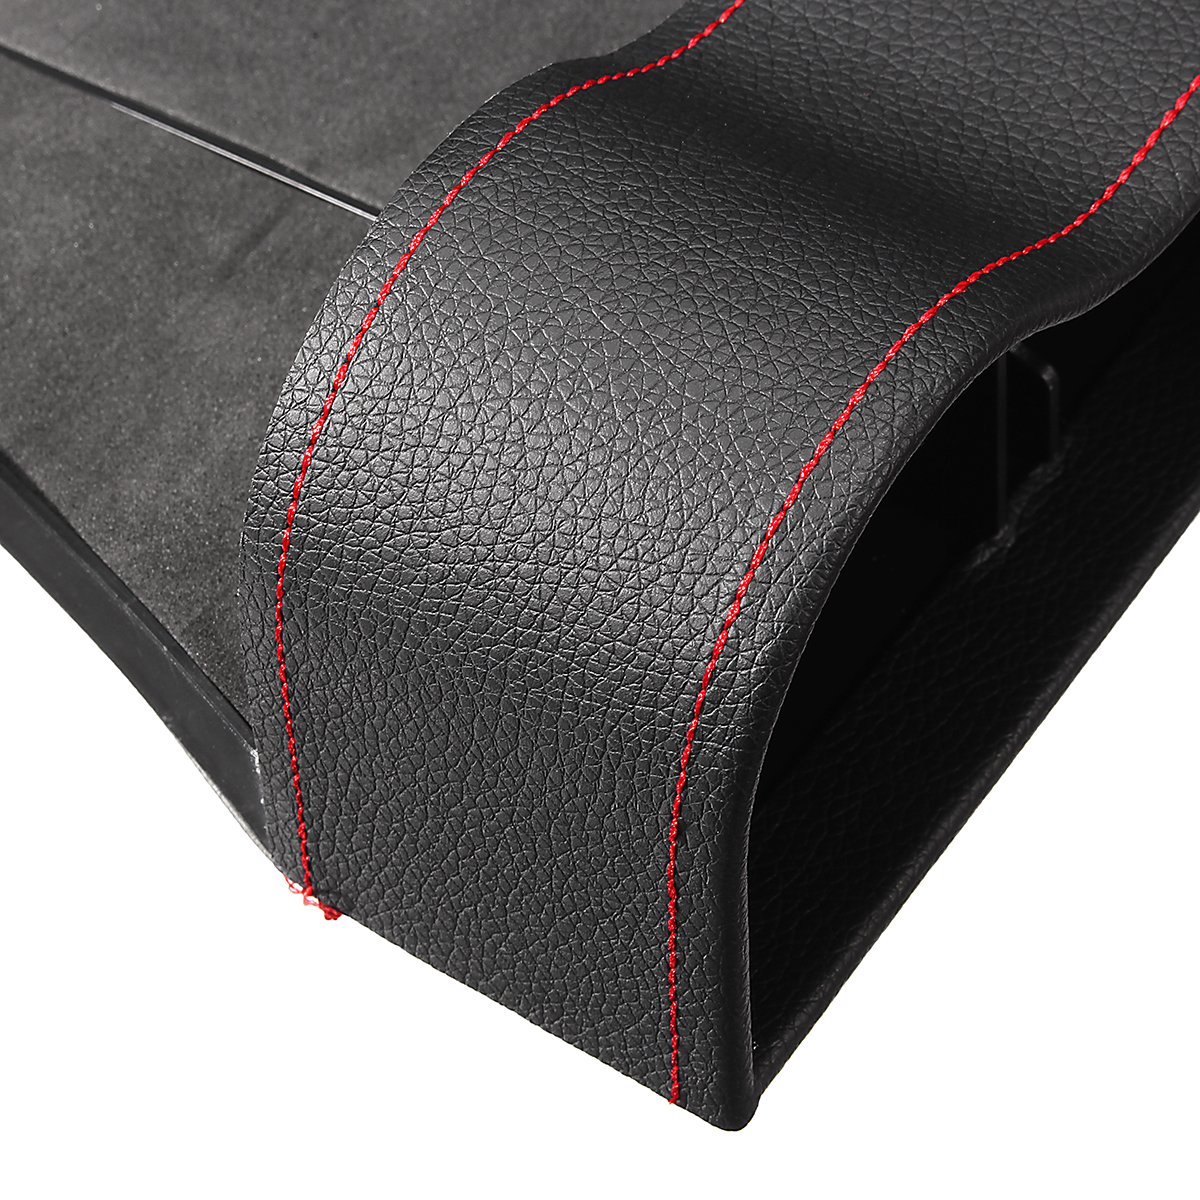 PU Leather Right Side Car Seat Crevice Gap Storage Box Pocket Organizer Phone Holder